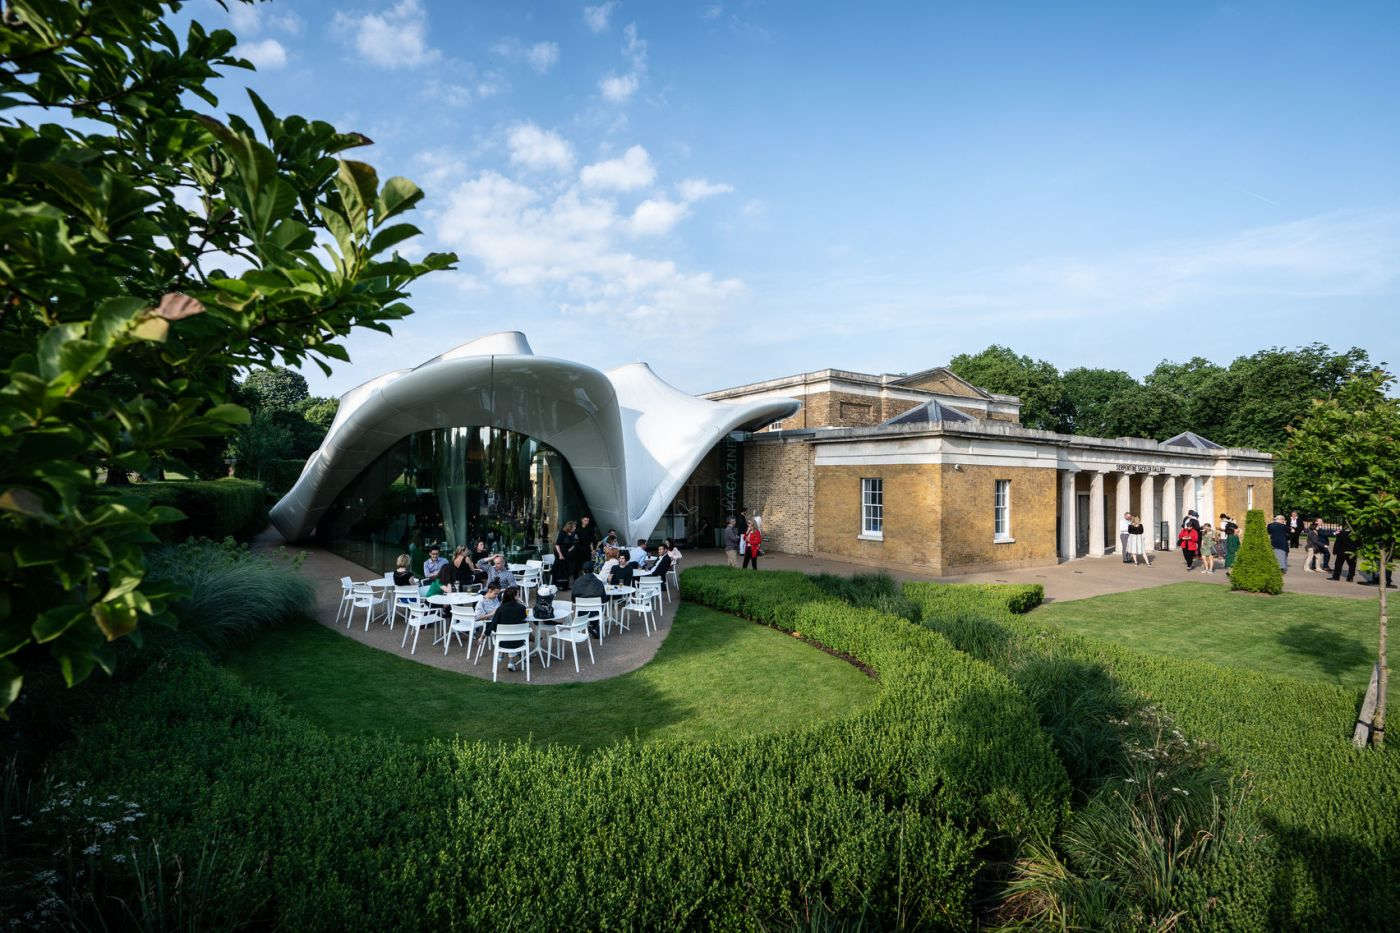 An unusual party venue London, Serpentine Sackler Gallery is a unique and contemporary Space in Kensington Gardens. The right hand side of the building is a traditional square, brick building whilst the left hand side is a creative structure that's white and curved.